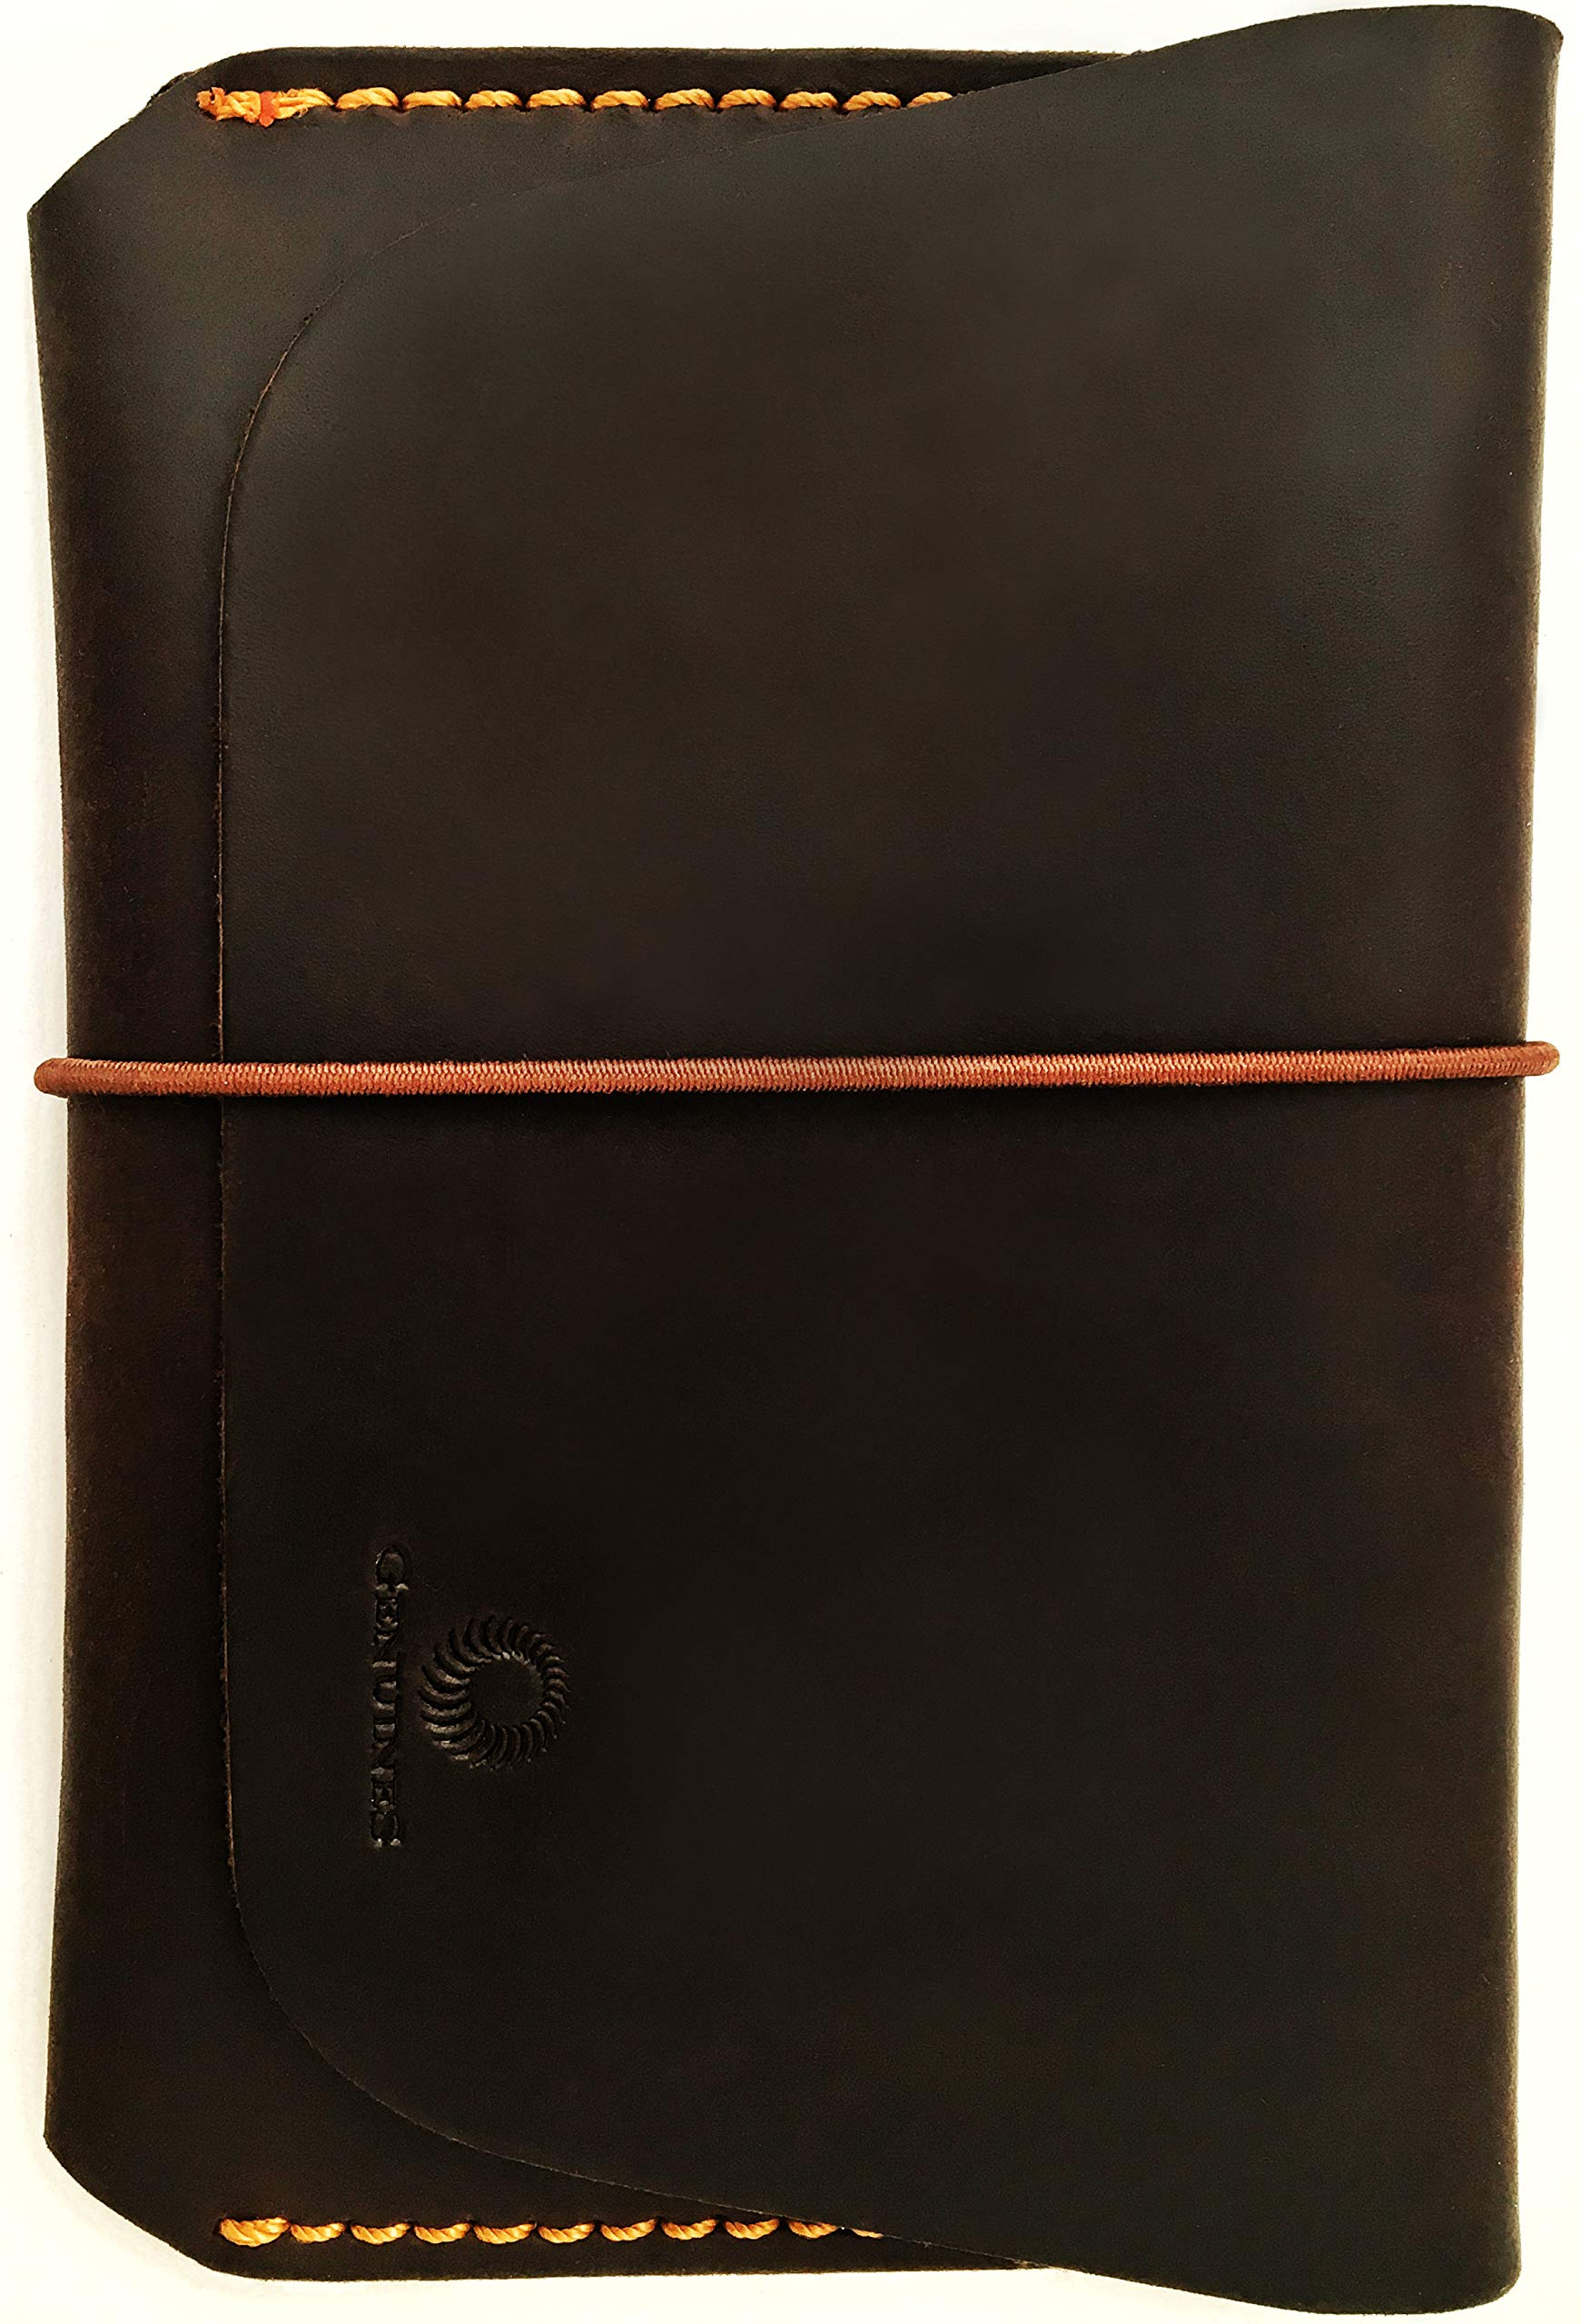 Leather Passport Holder for Men & Women - Genuines Wallet Case for 1 or 2 Passports (Vintage brown) by Genuines